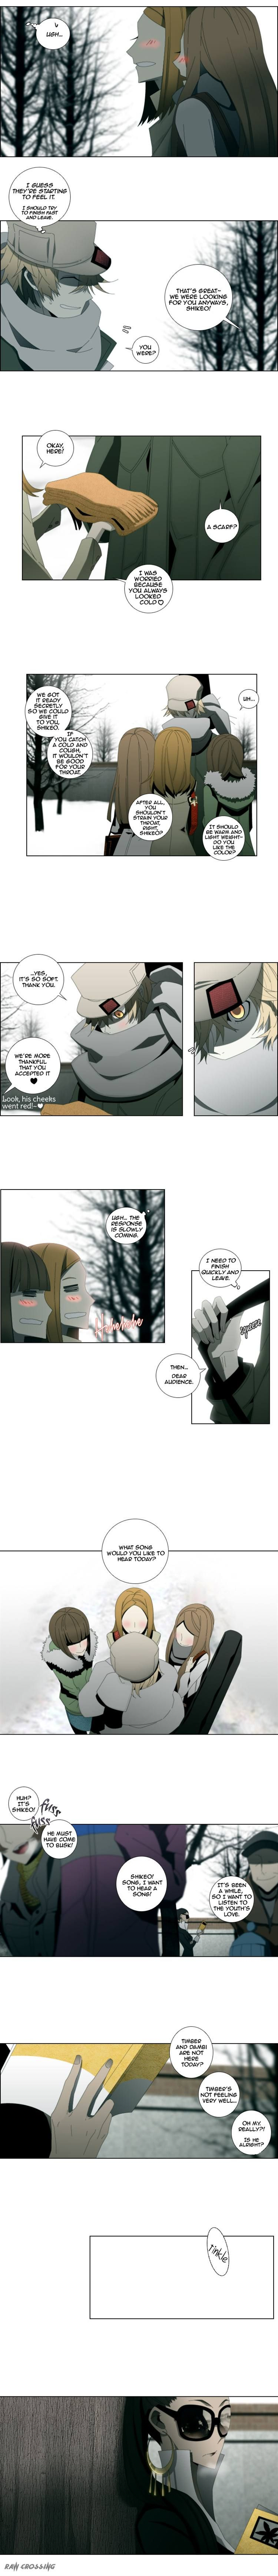 Trace: Perfume 4 Page 2